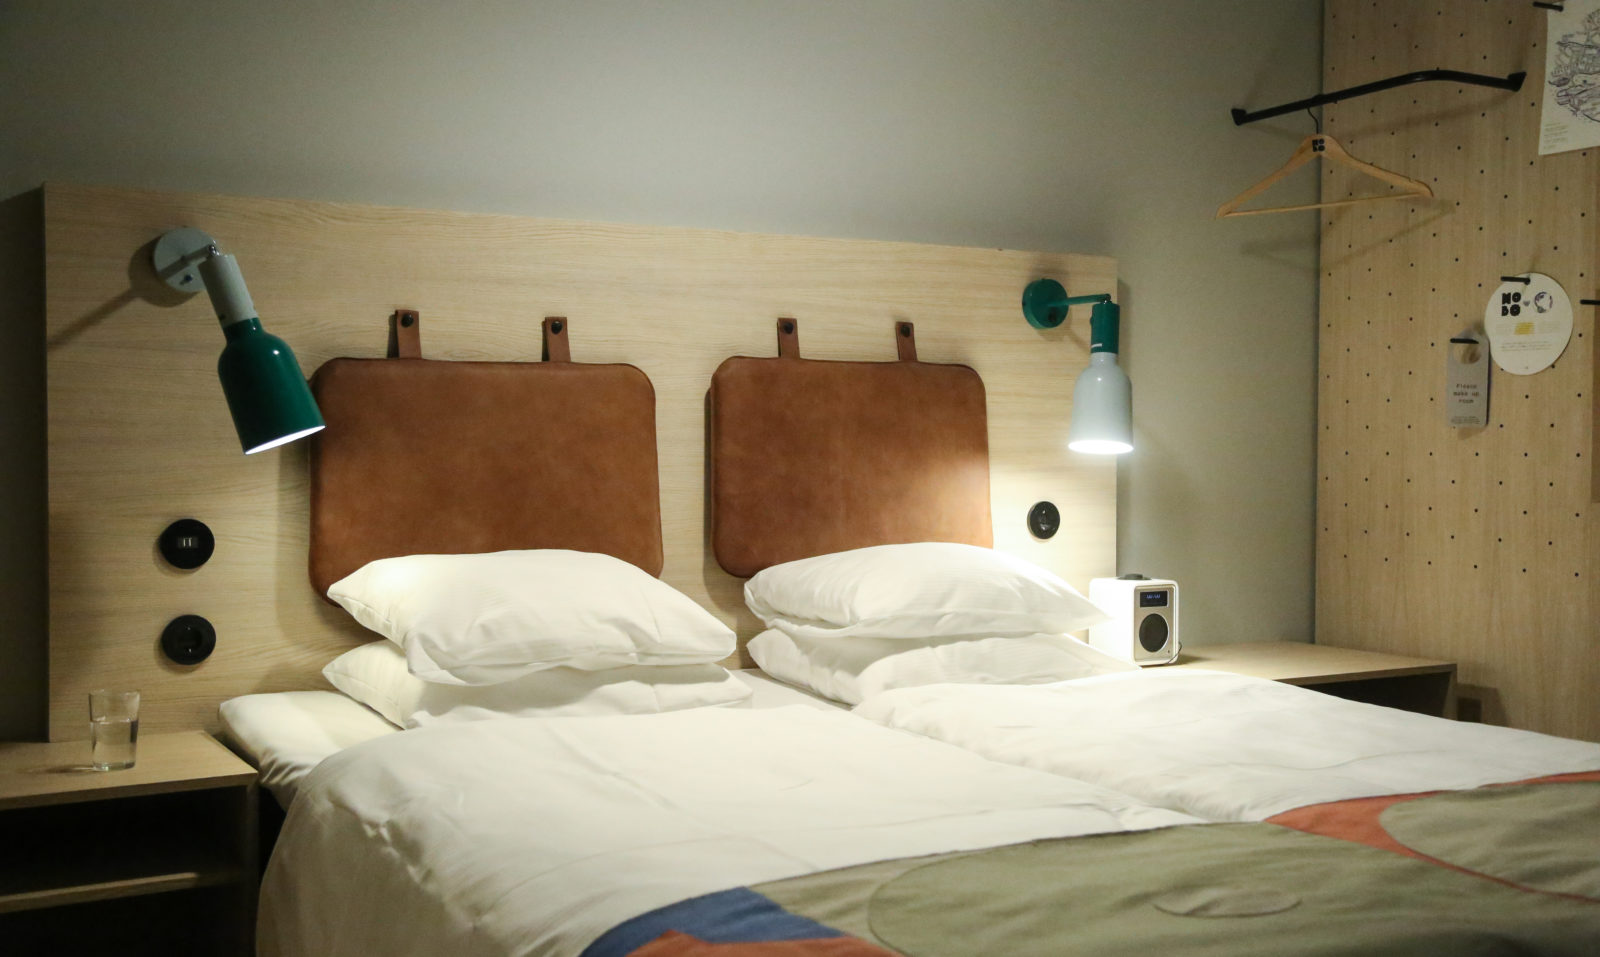 Smaller room with bed with white fresh sheets at Hobo Hotel in Stockholm